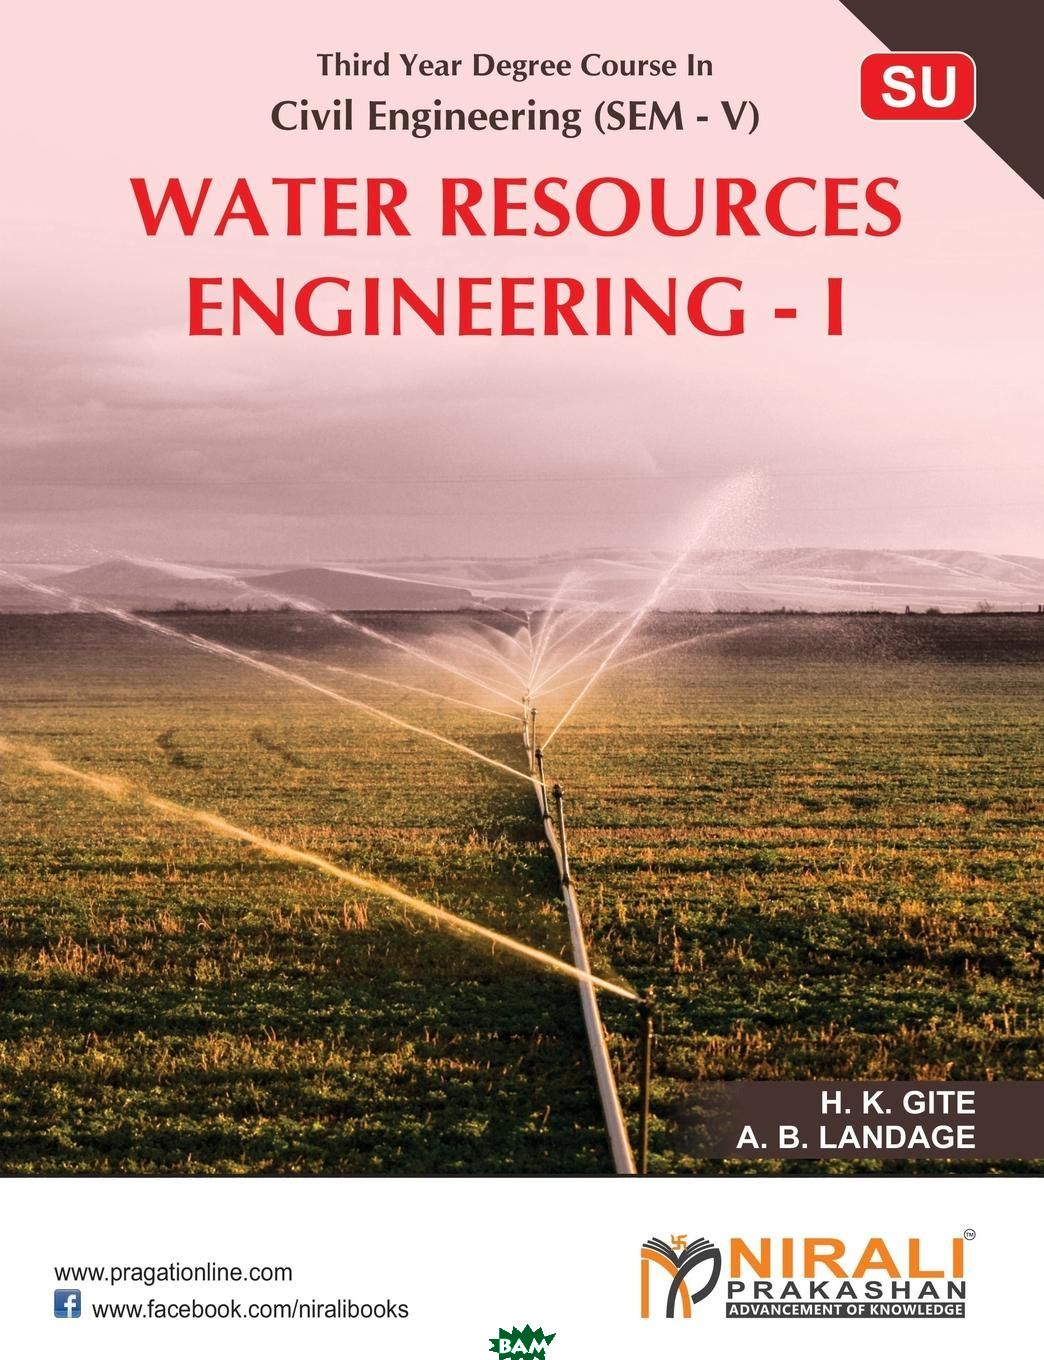 WATER RESOURCES ENGINEERING-I